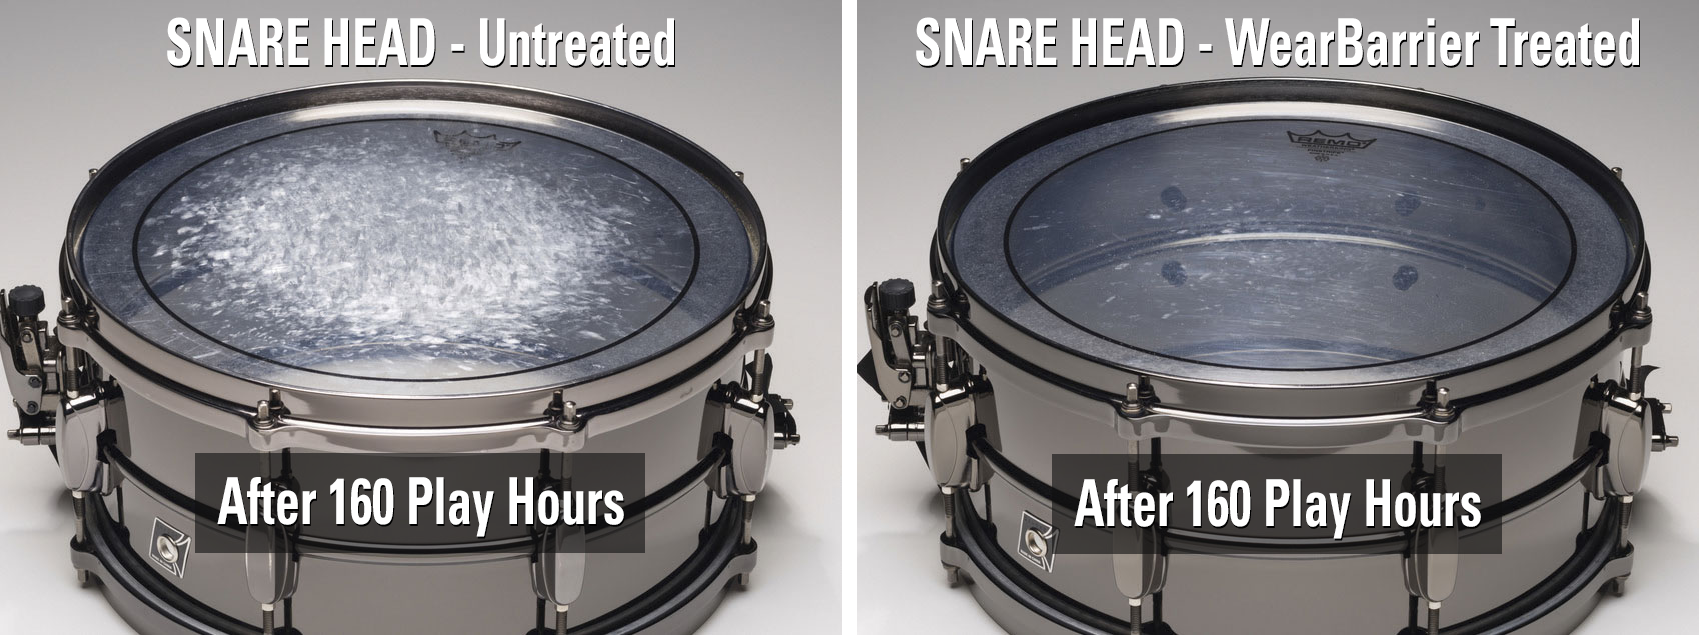 WearBarrier drum head cleaner revitalizes drum sound and response with one easy application.